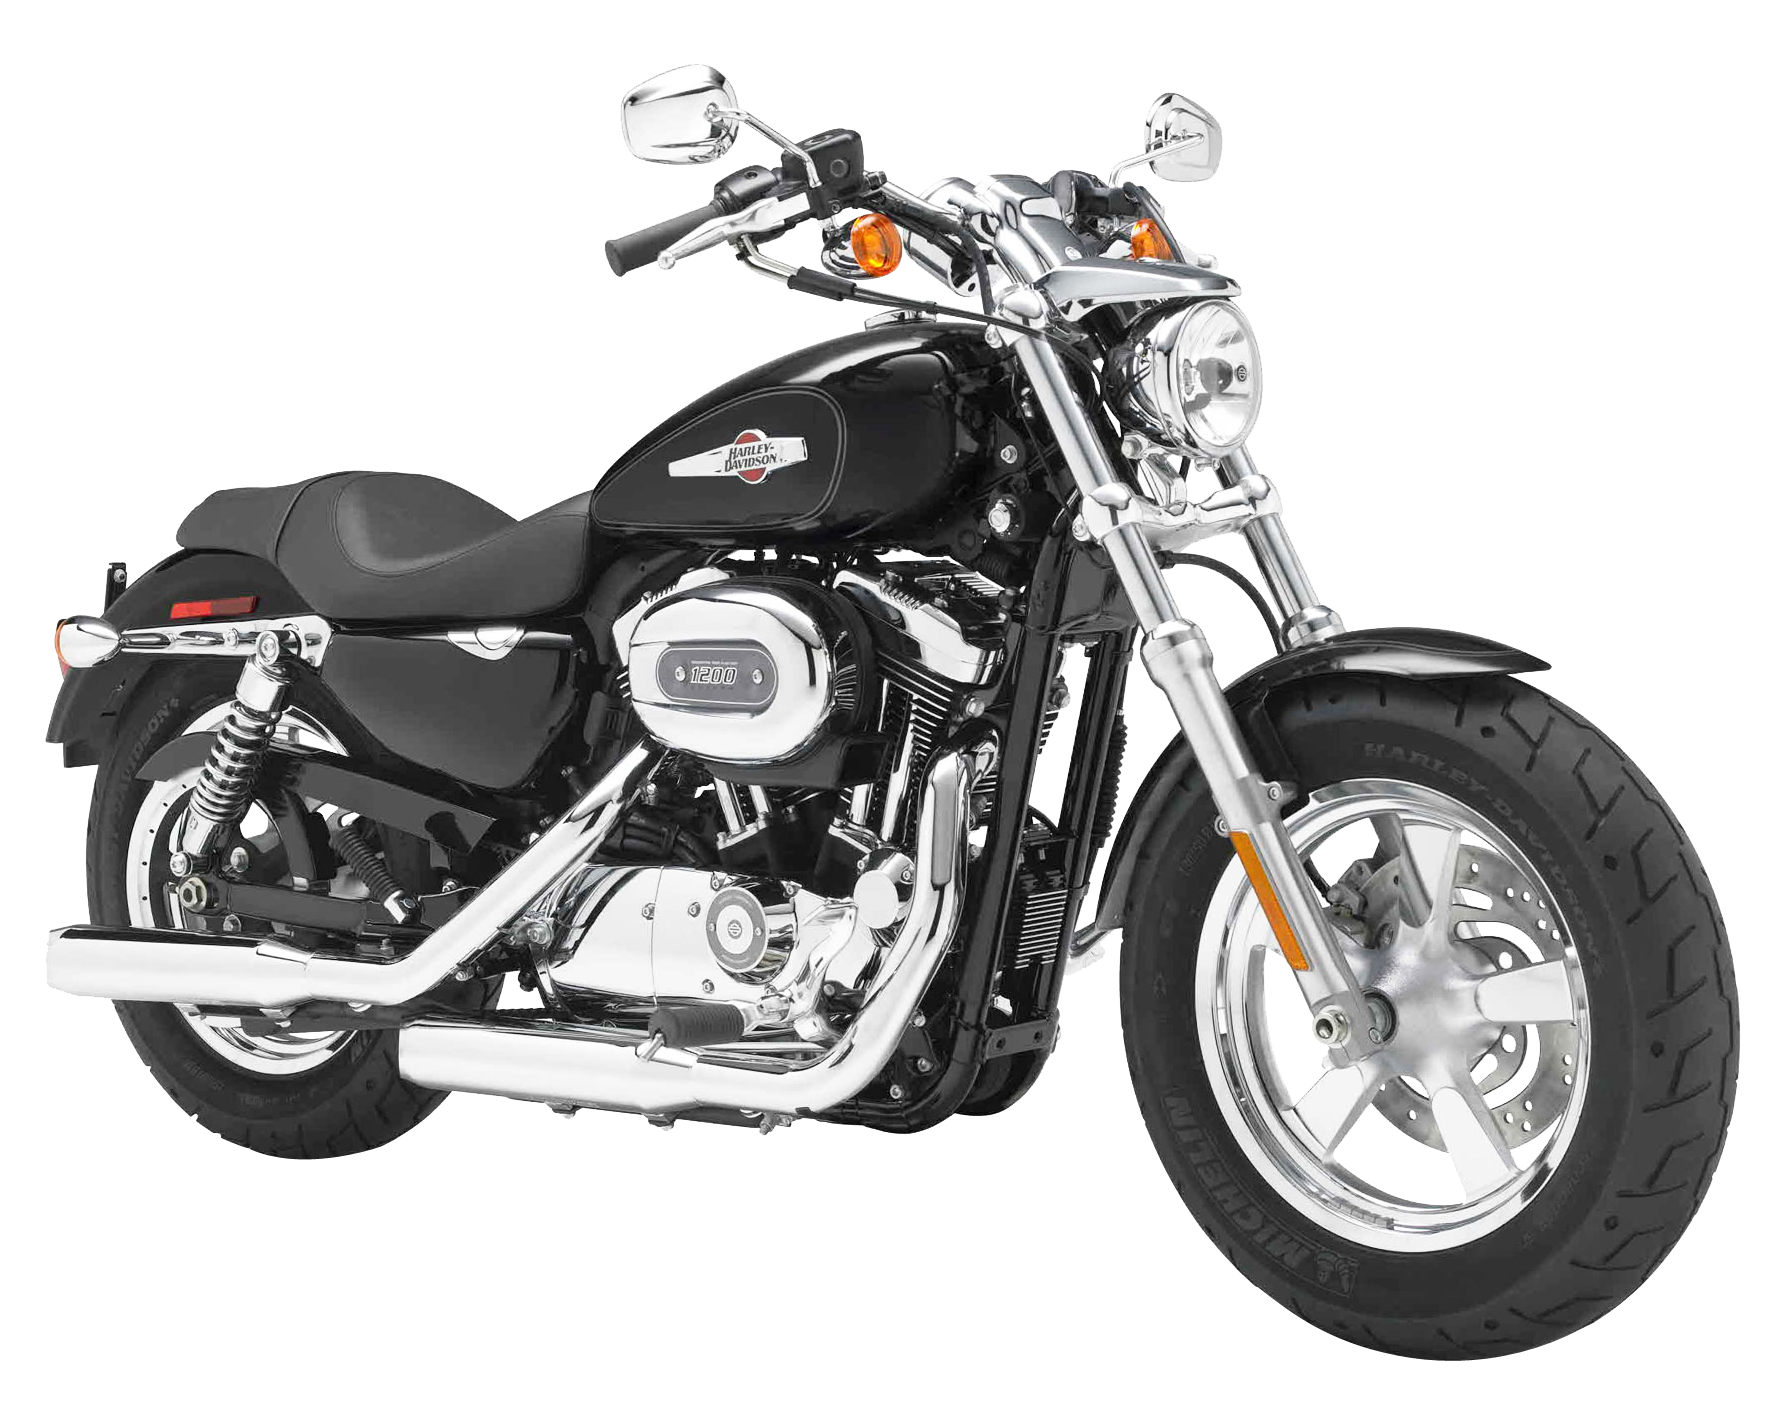 Motorcycle clipart custom motorcycle. Harley davidson sportster bike